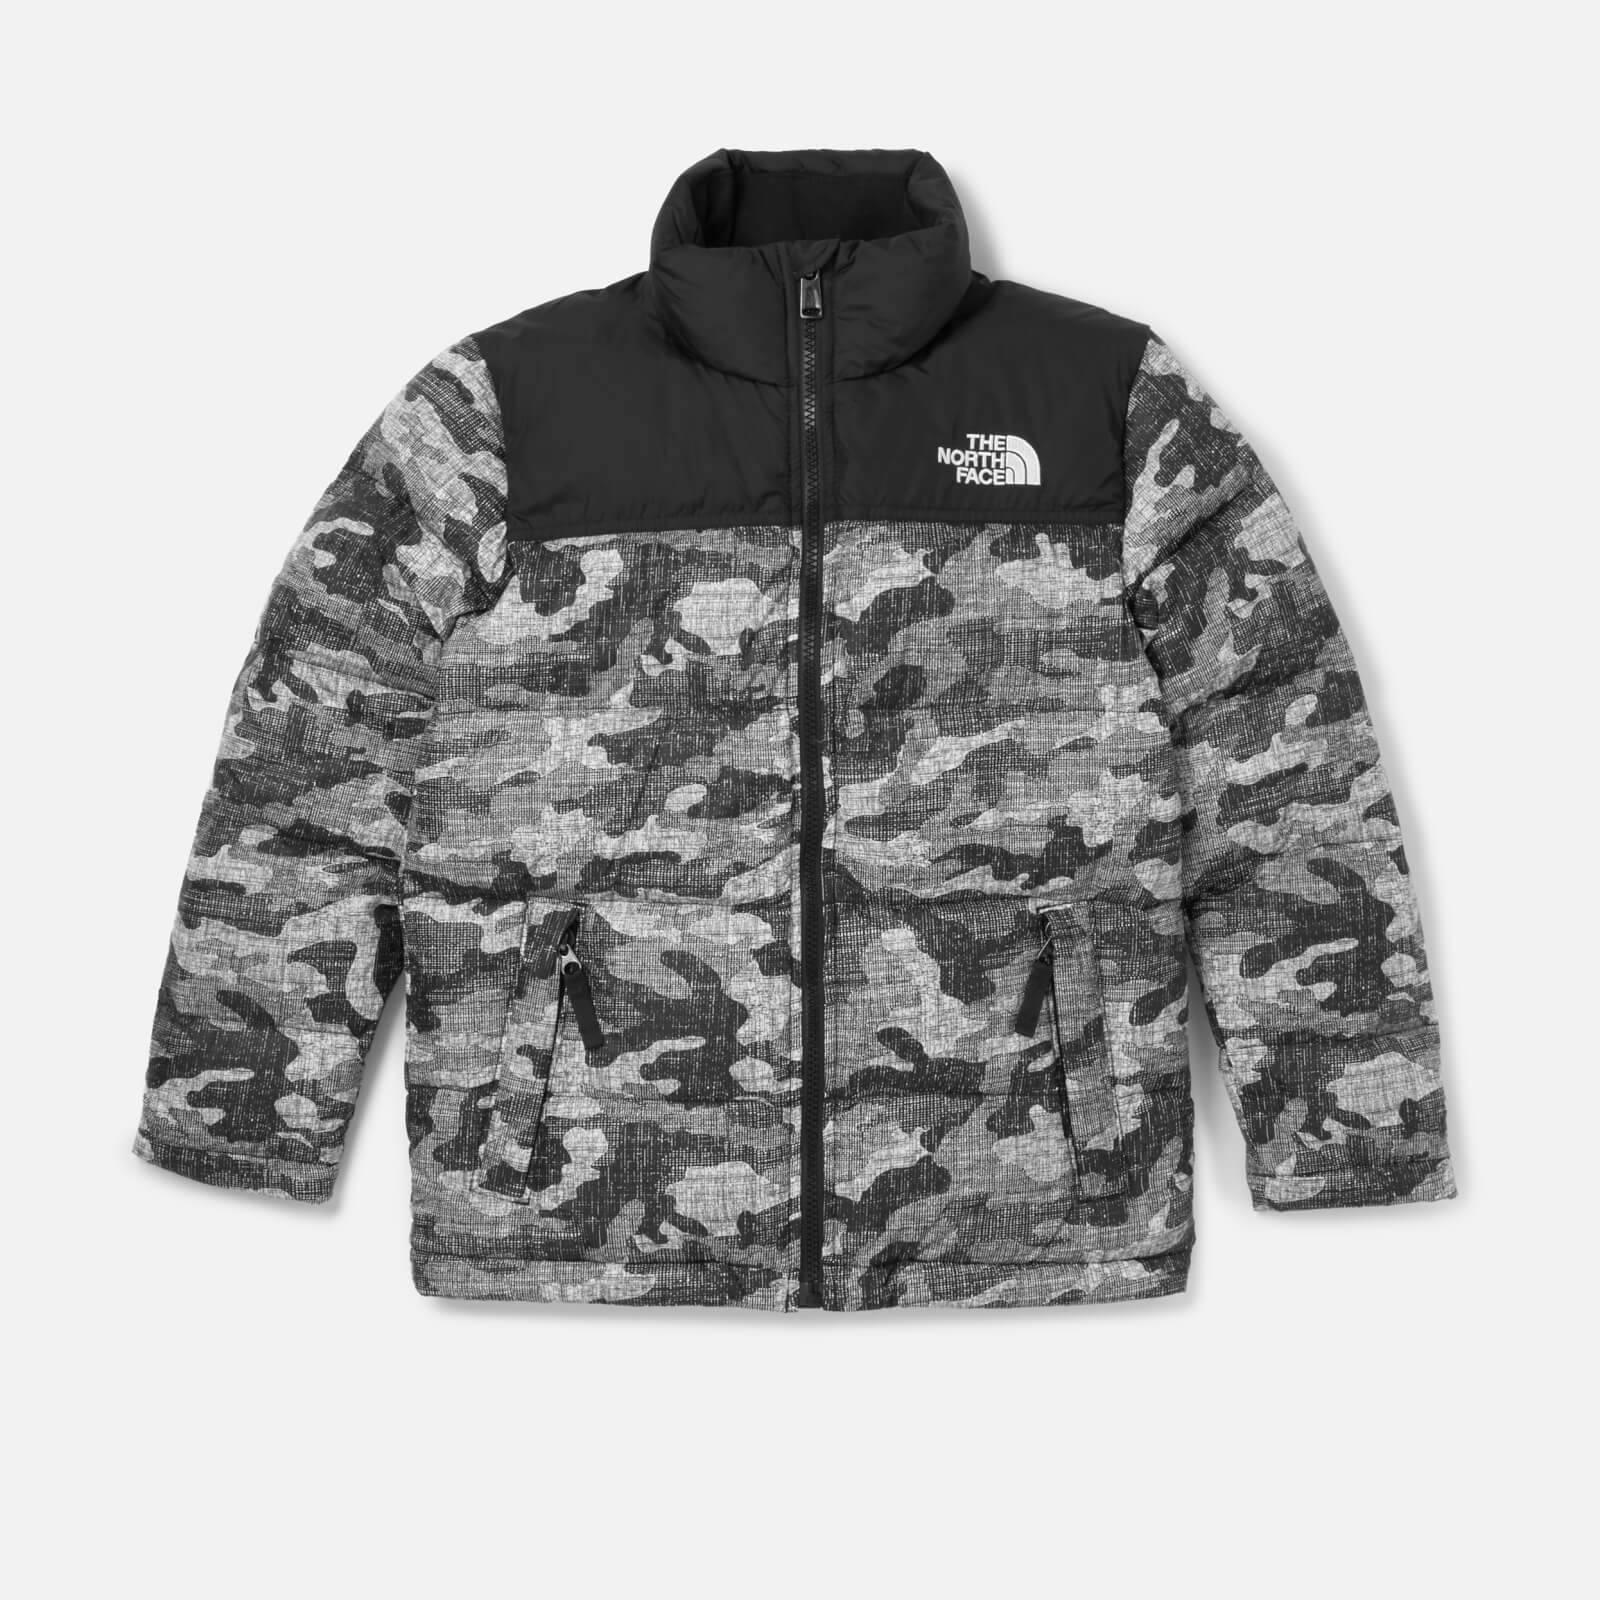 The North Face Boys' Nuptse Down Jacket - TNF Black Textured Camo Print - 6 years/XS - Black